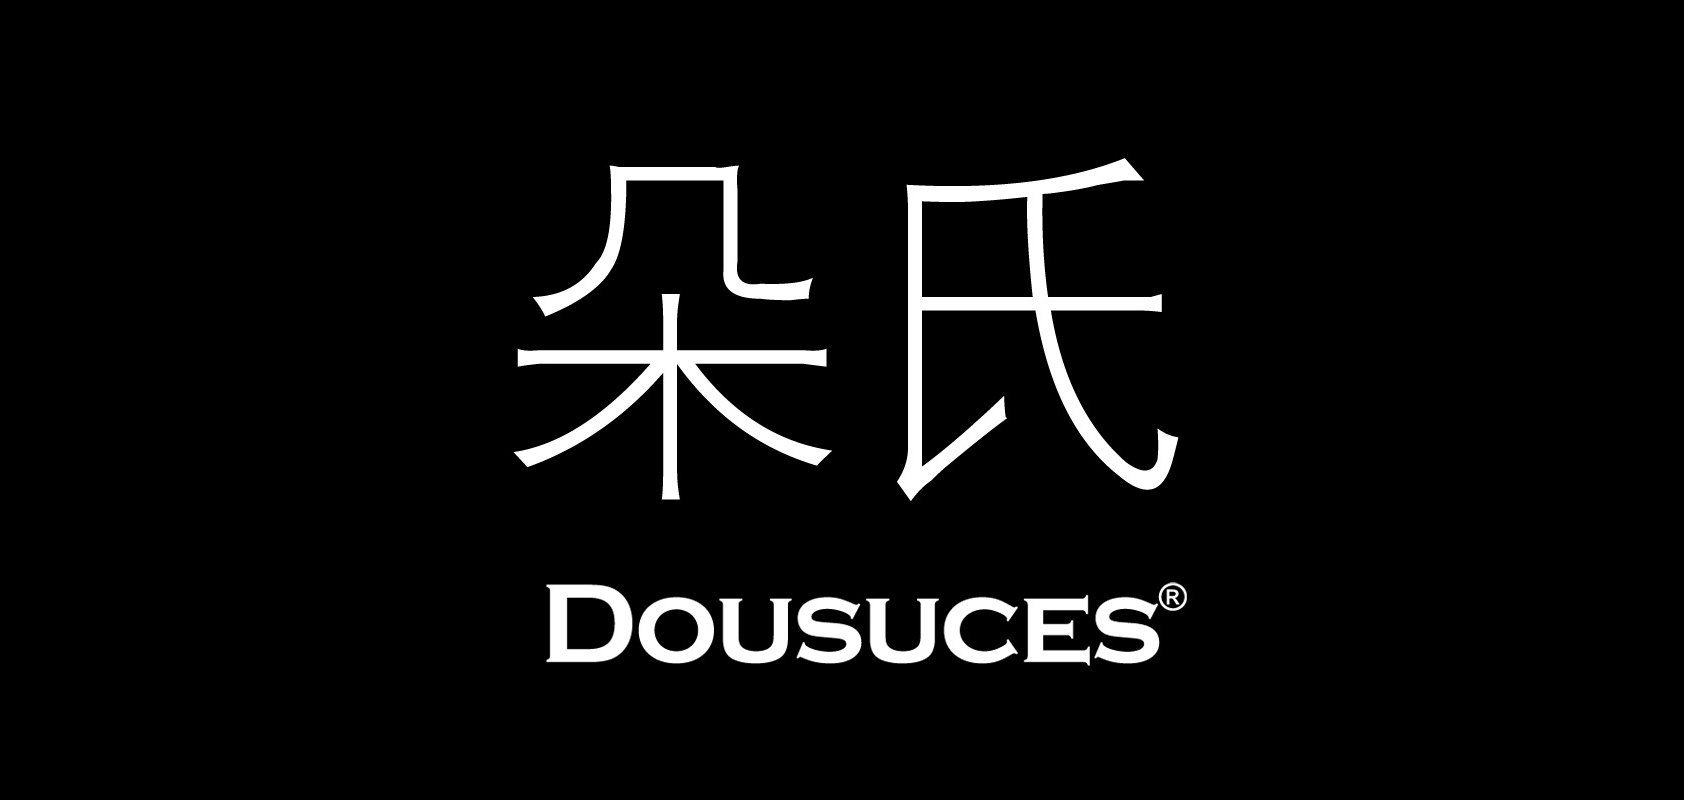 Dousuces品牌logo